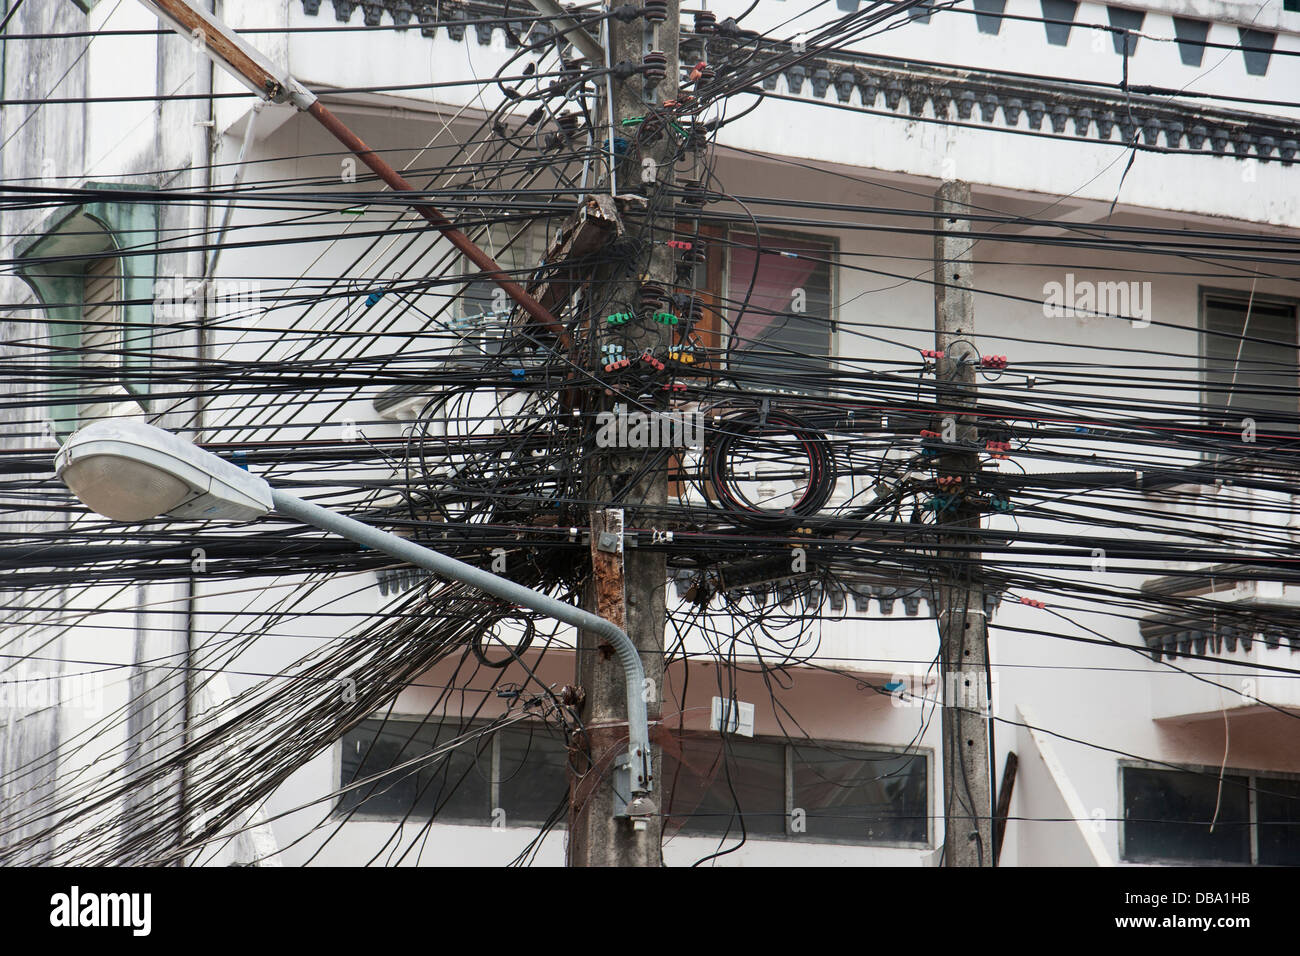 Get wired in Thailand Stock Photo: 58613111 - Alamy